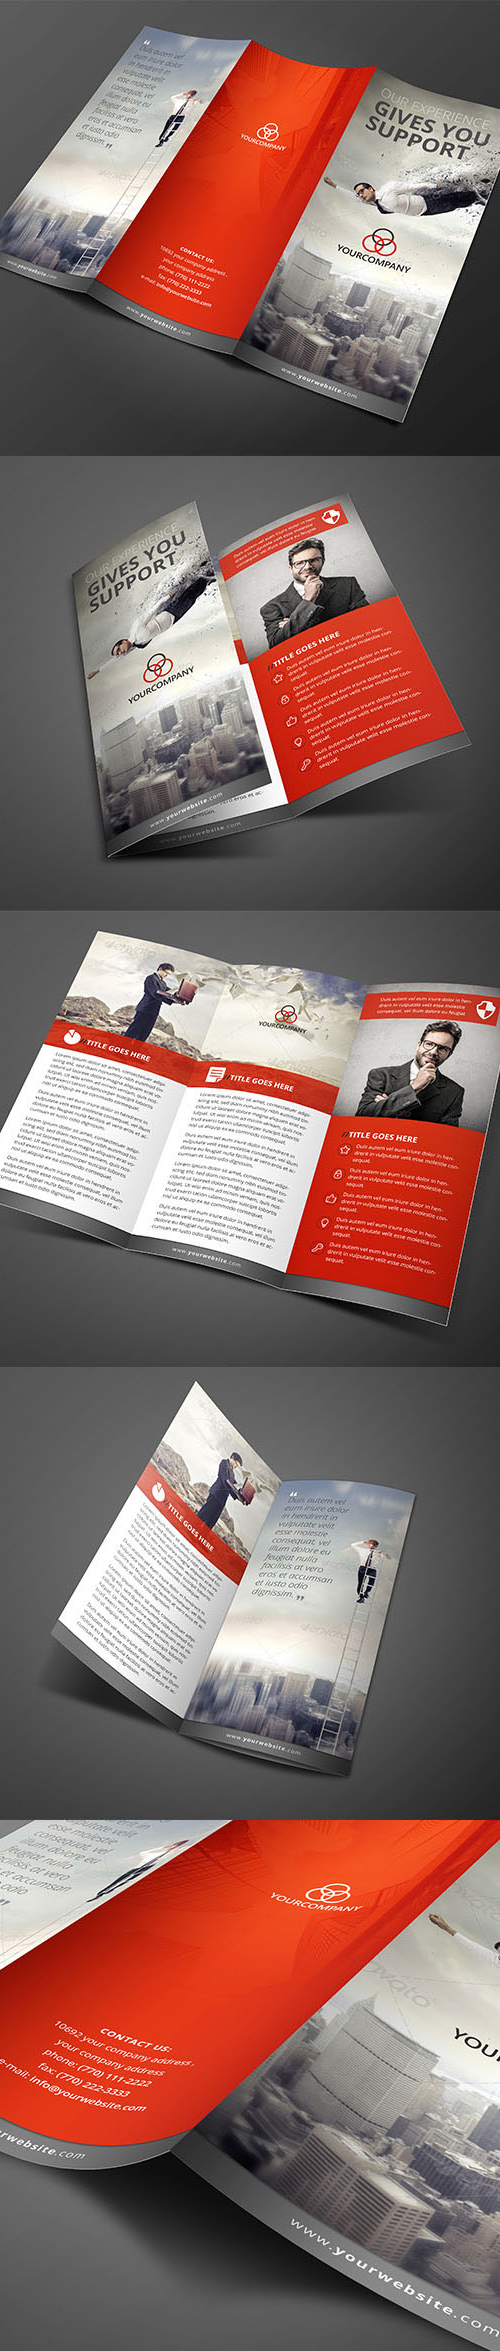 Clean Red Trifold Brochure Template